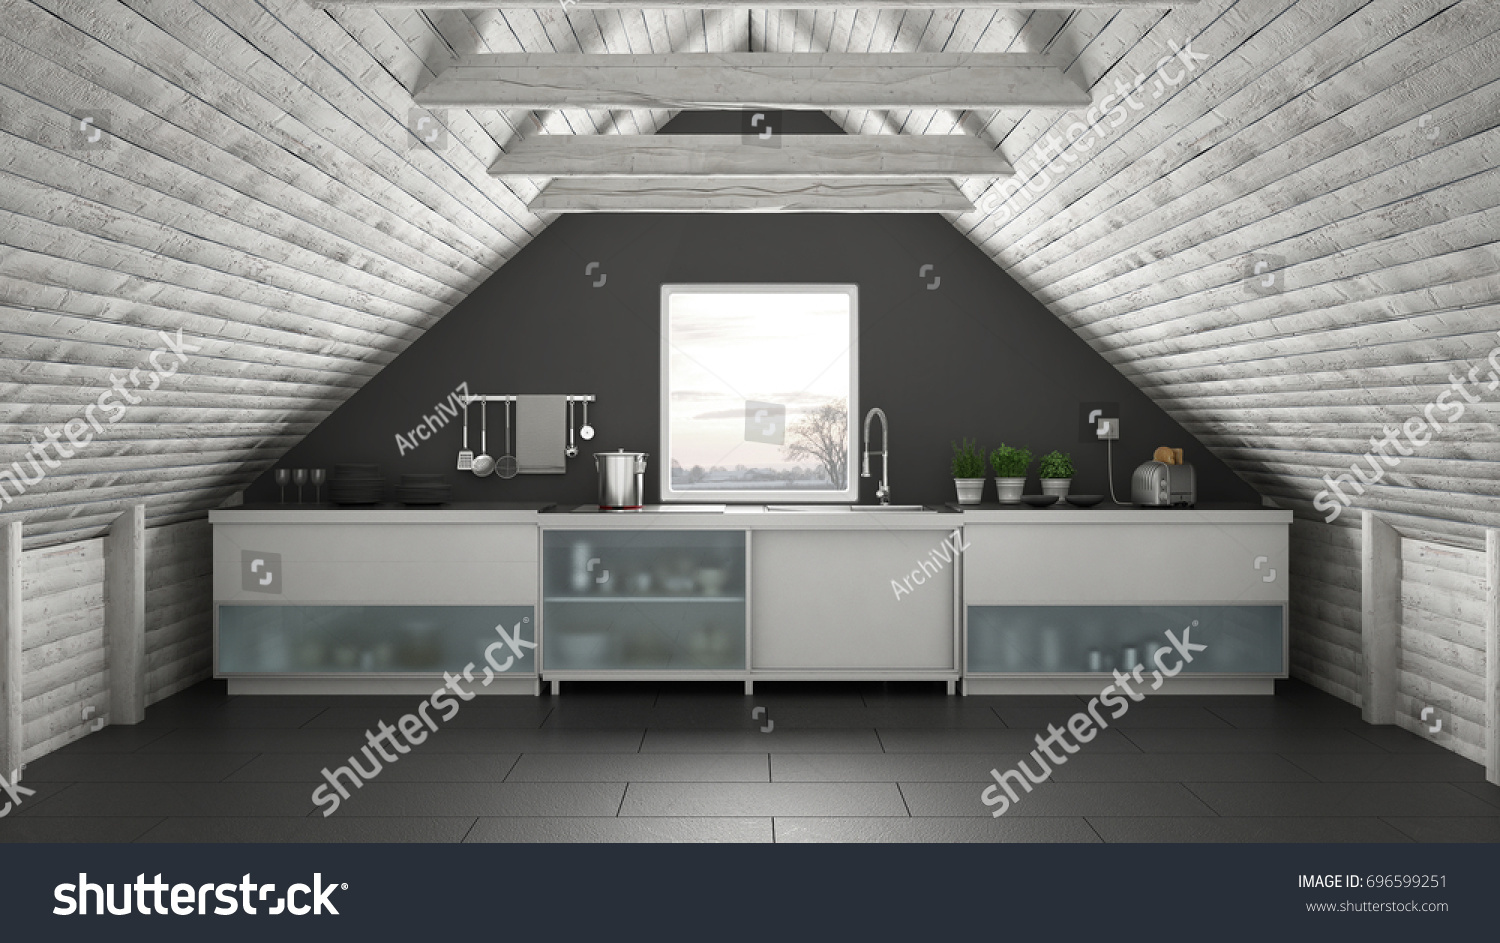 Scandinavian industrial kitchen loft mezzanine roof architecture white and turquoise interior design 3d illustration | EZ Canvas